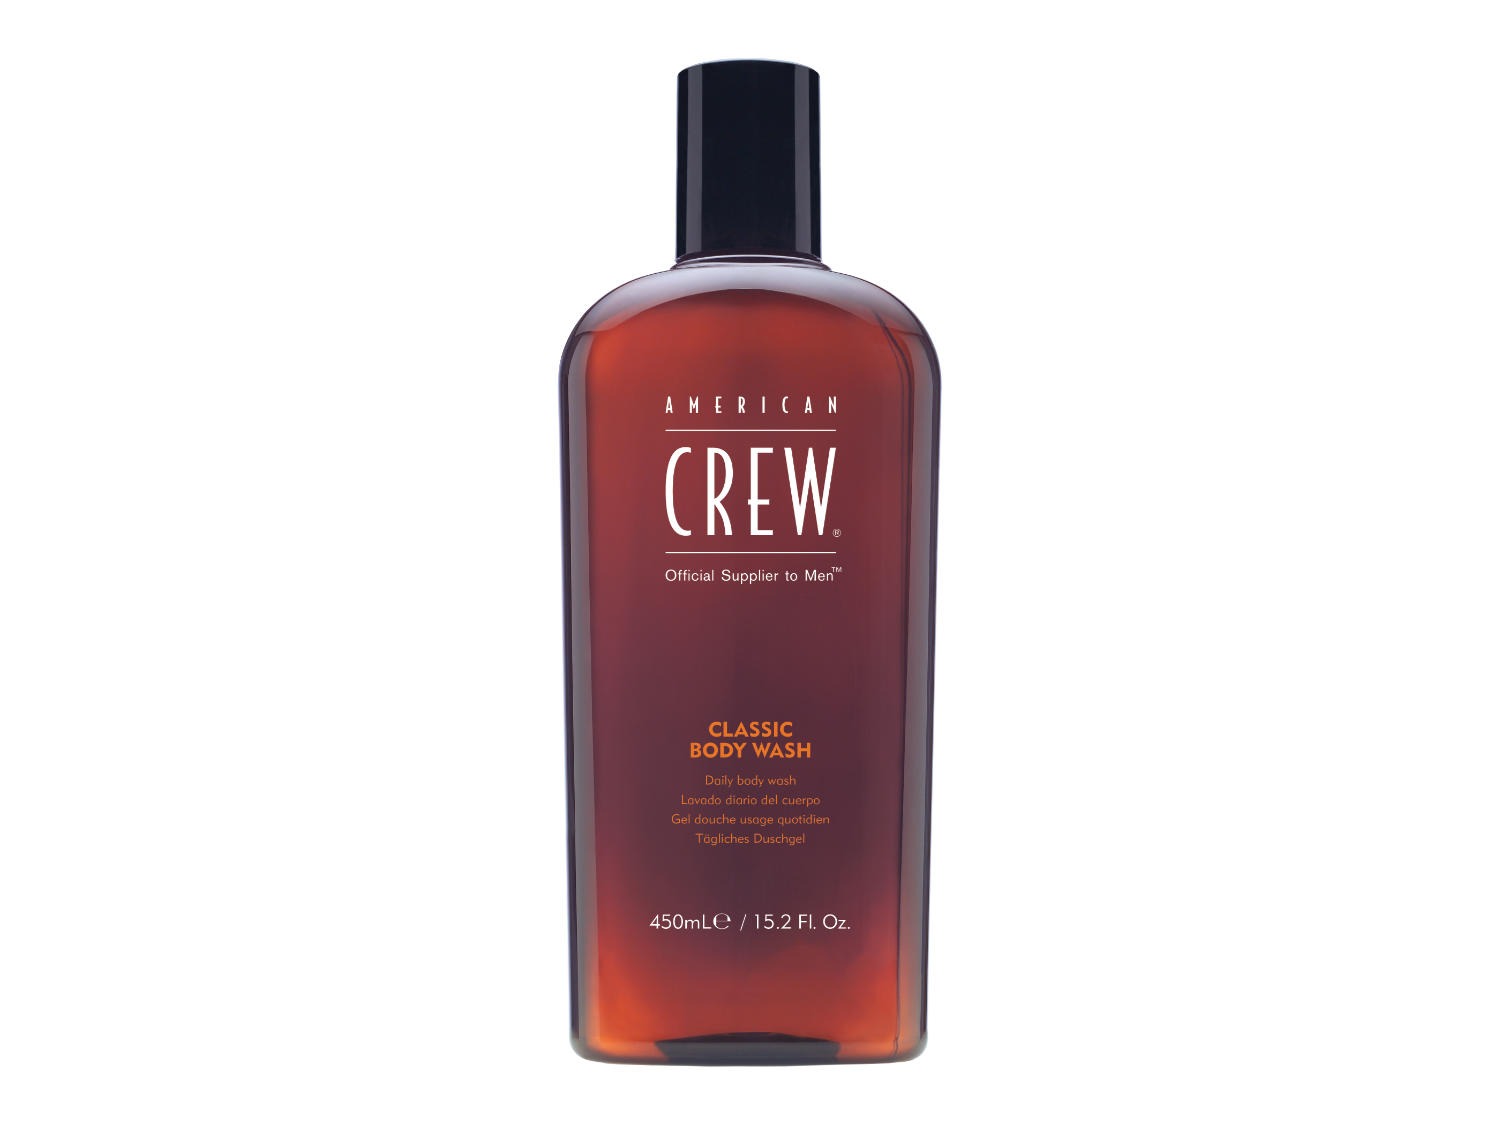 Arma Beauty - American Crew - Classic Body Wash